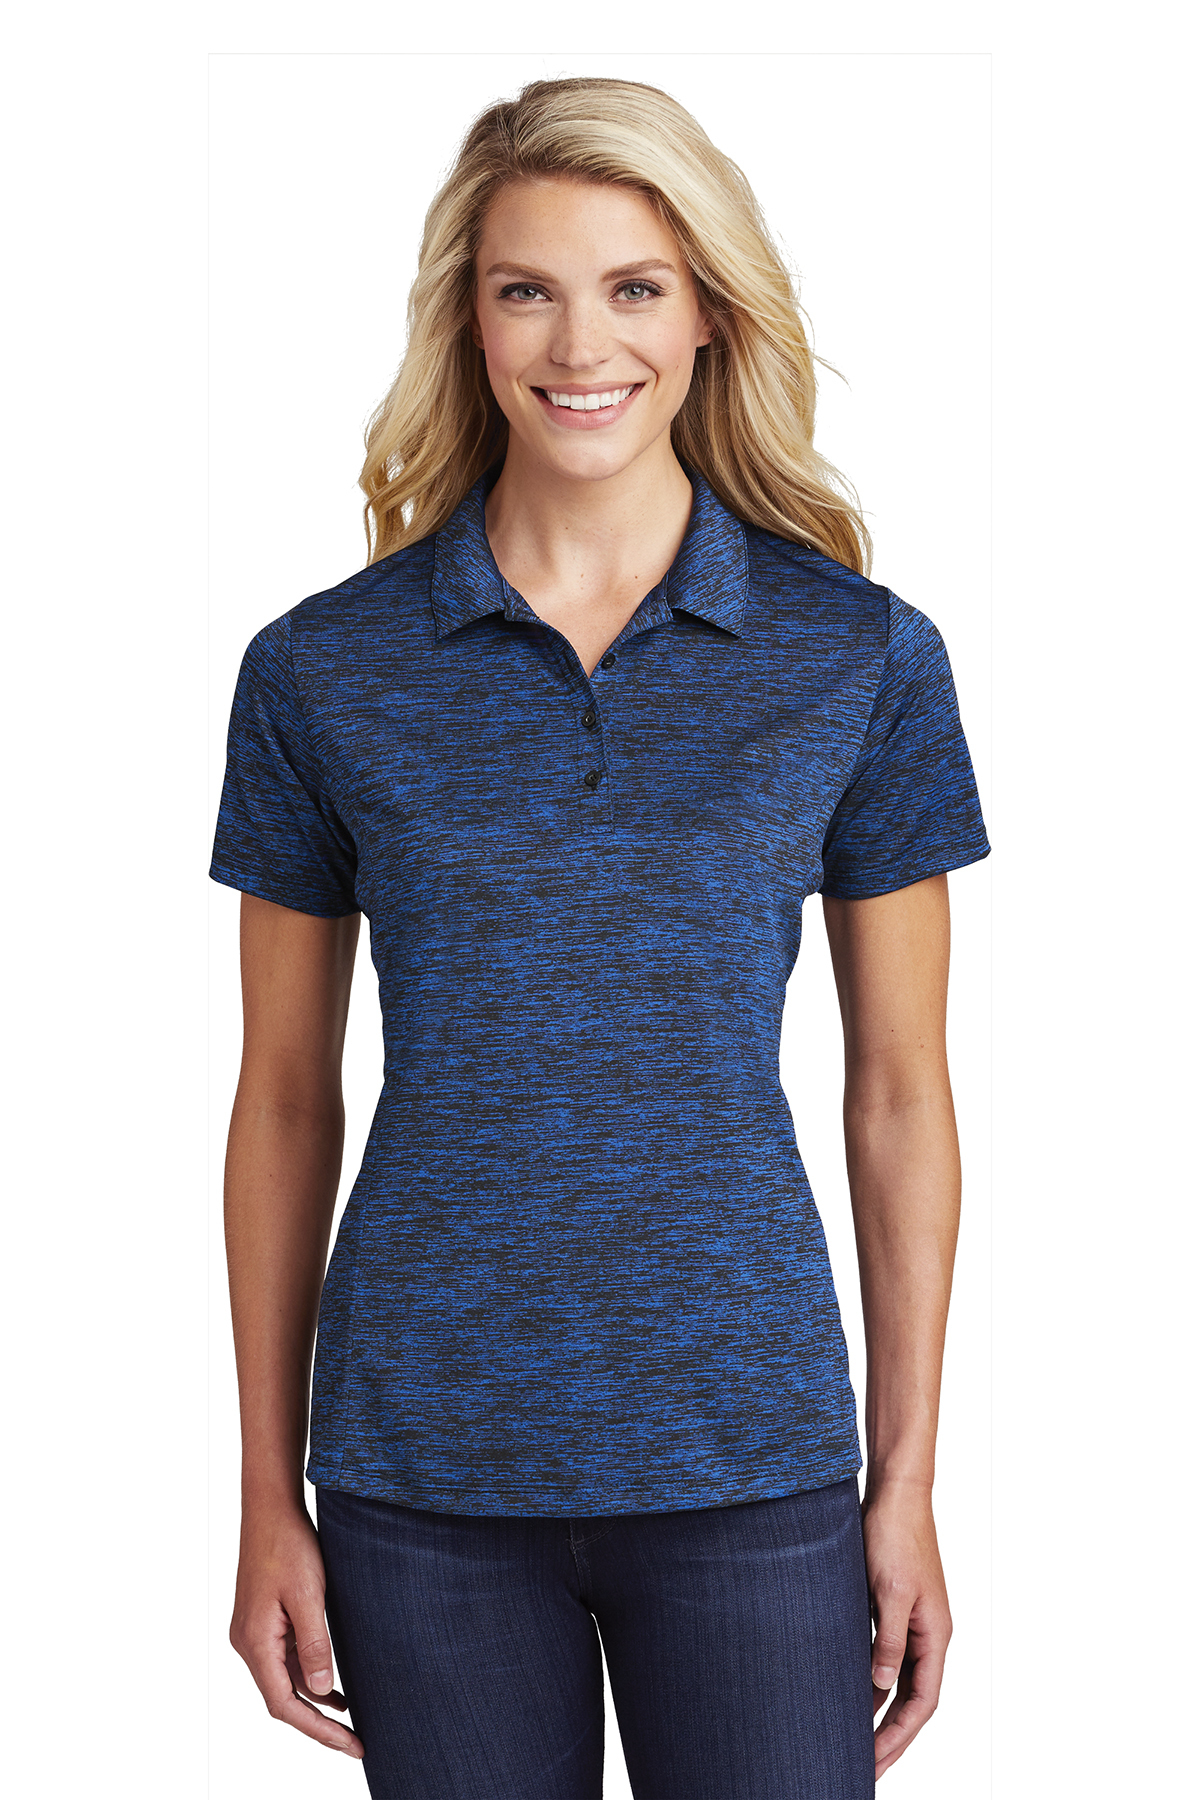 Sport Tek Ladies Posicharge Electric Heather Polo Ladies Women Polos Knits Sport Tek All styles and colors available in the official adidas online store. sport tek ladies posicharge electric